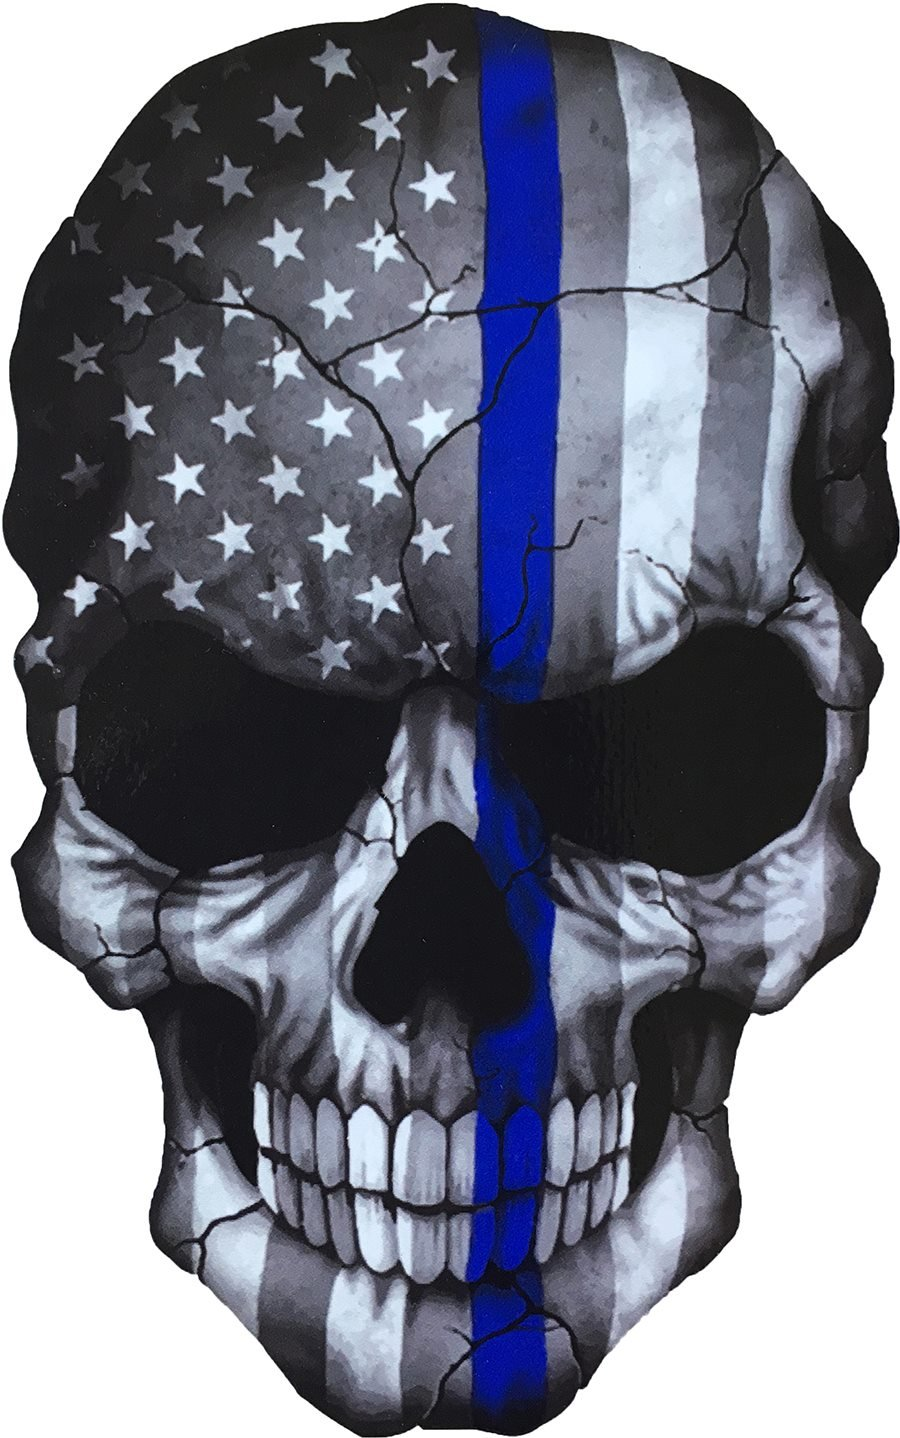 Sticker Skull American Flag Subdued Thin Blue Line USA Military Support Decal Size 6.5 x 4.25 inch ton